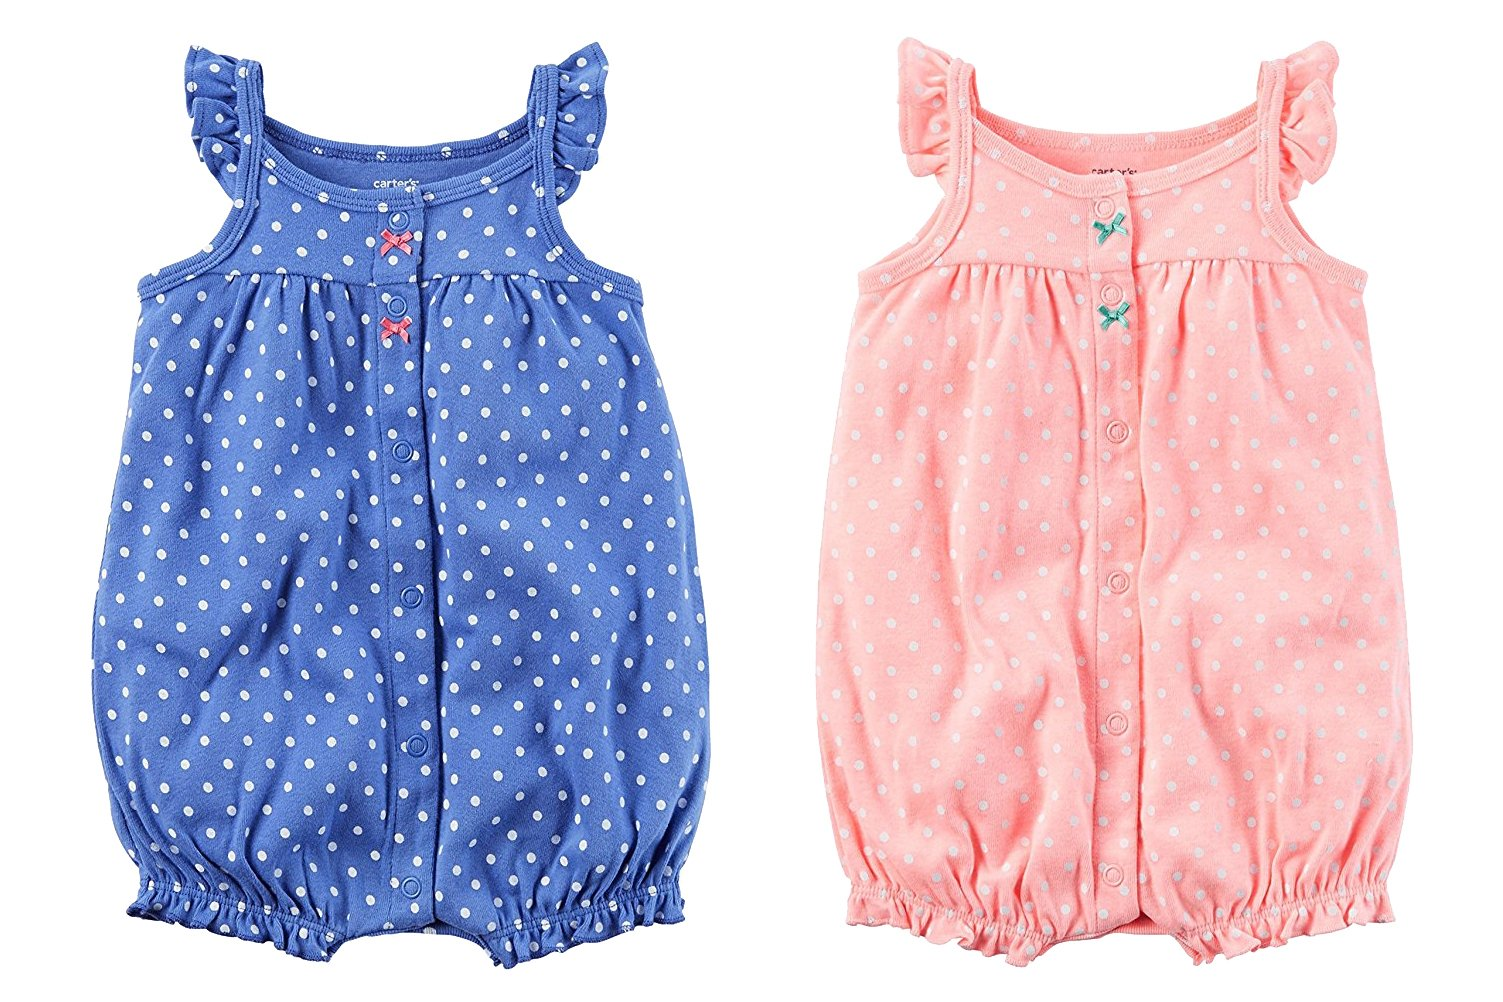 365bbbf6360b4 Amazon.com: Carter's Baby Girls' Strawberry Snap Up Romper 3 Months ...